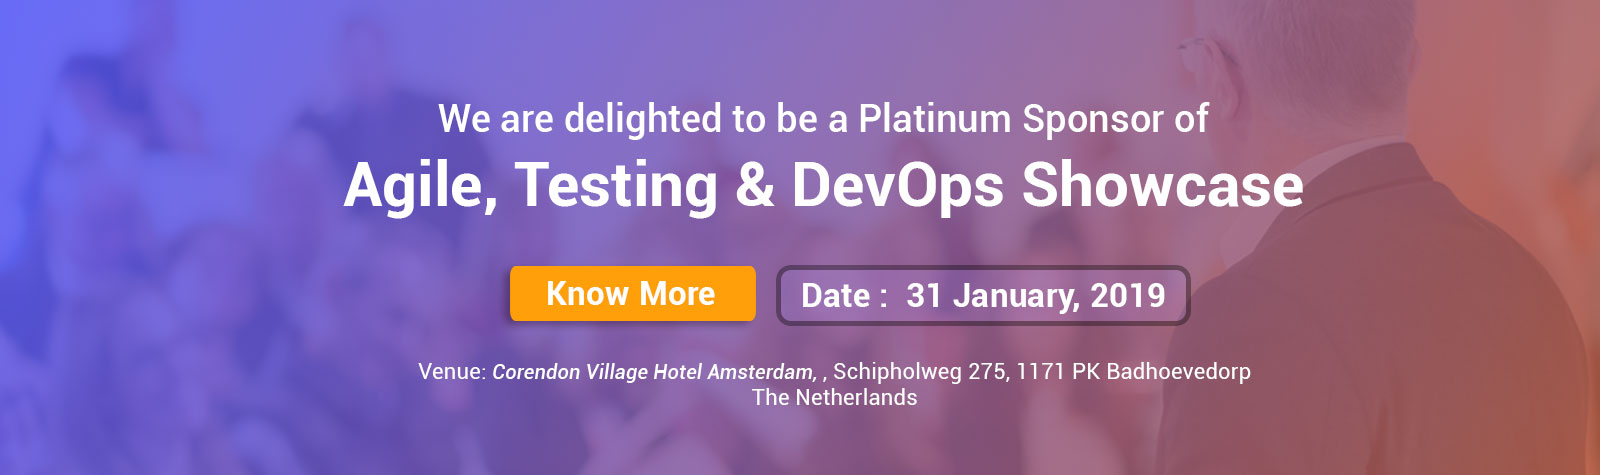 Agile, Testing & DevOps Showcase 1